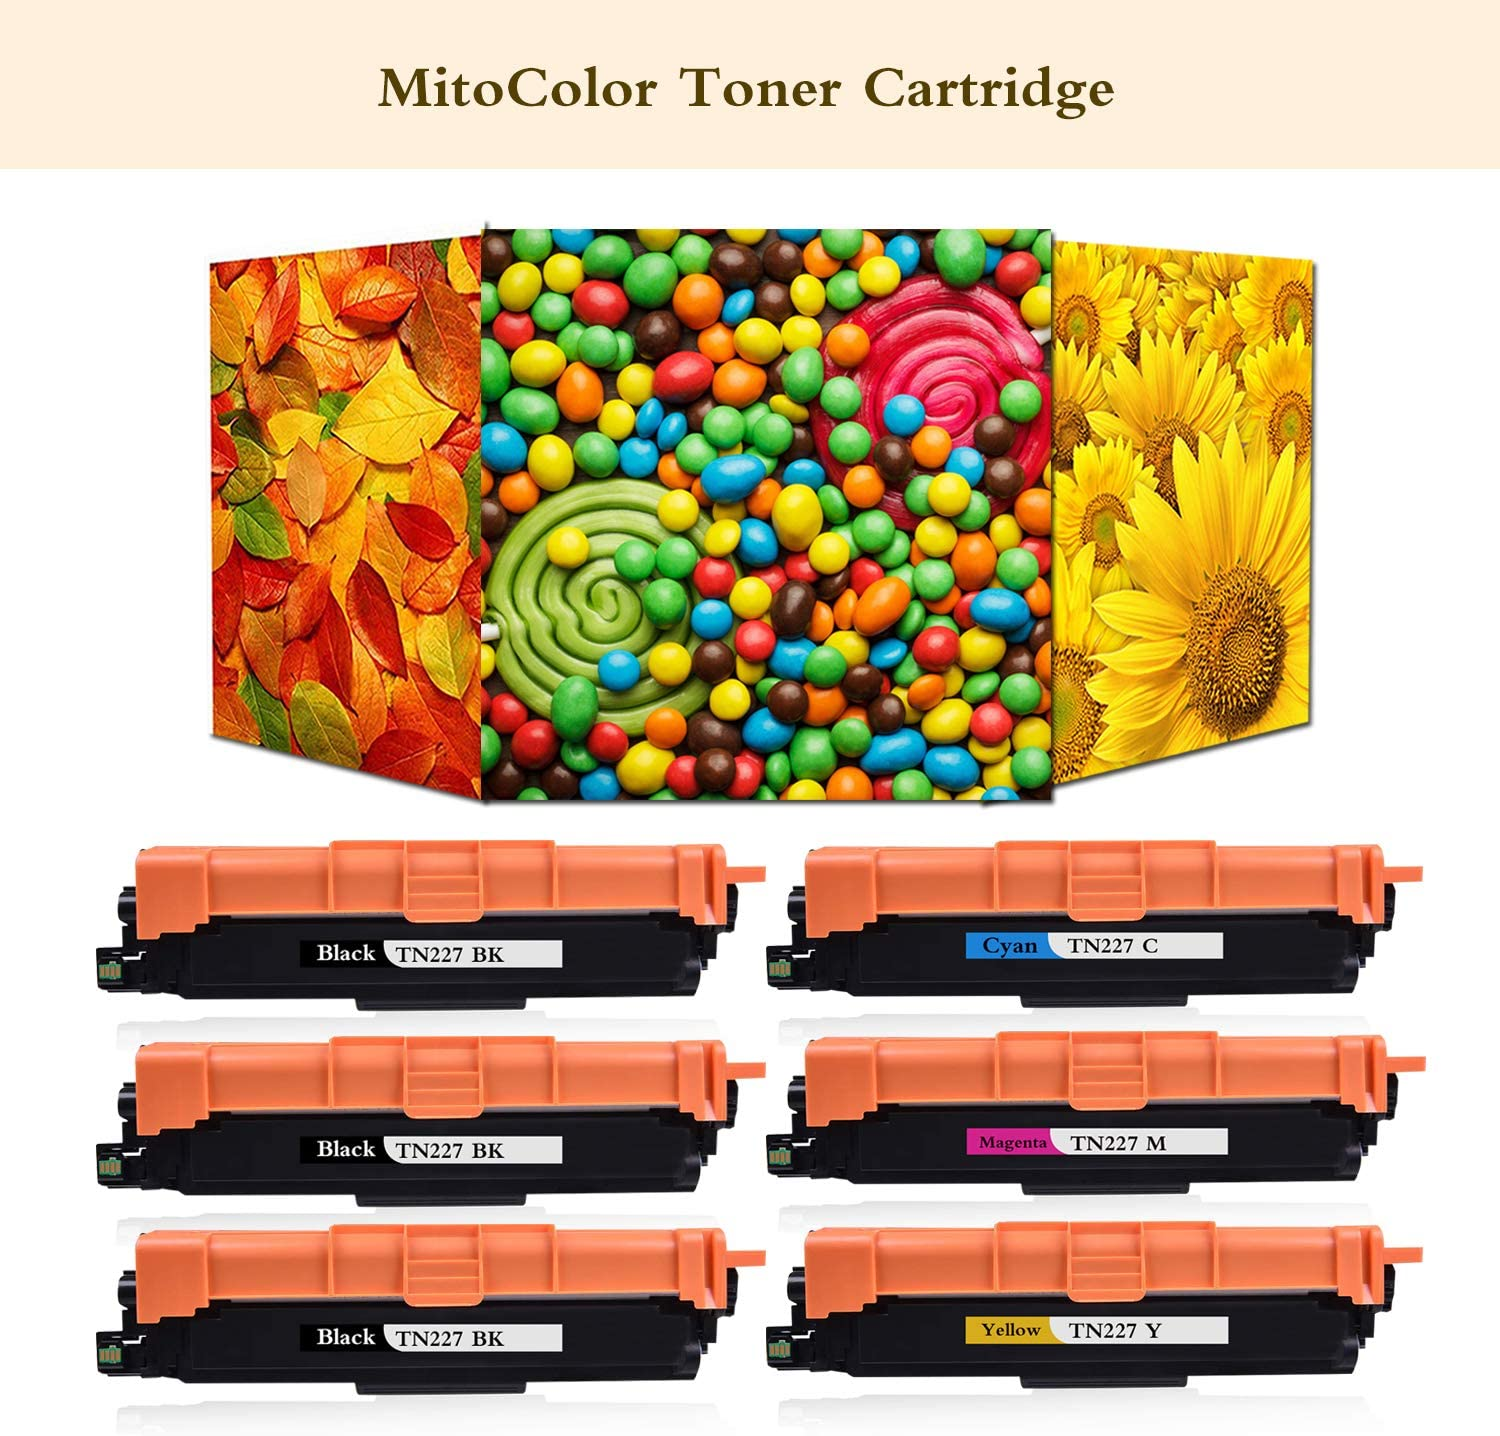 3BK+1C+1M+1Y 6-Pack Replacement Toner Cartridge Compatible for Brother TN227 TN-227 for L3710CW L3750CDW L3730CDW HL-3210CW 3230CDW 3270CDW 3230CDN 3290CDW DCP-L3510CDW Printer Catrtridge